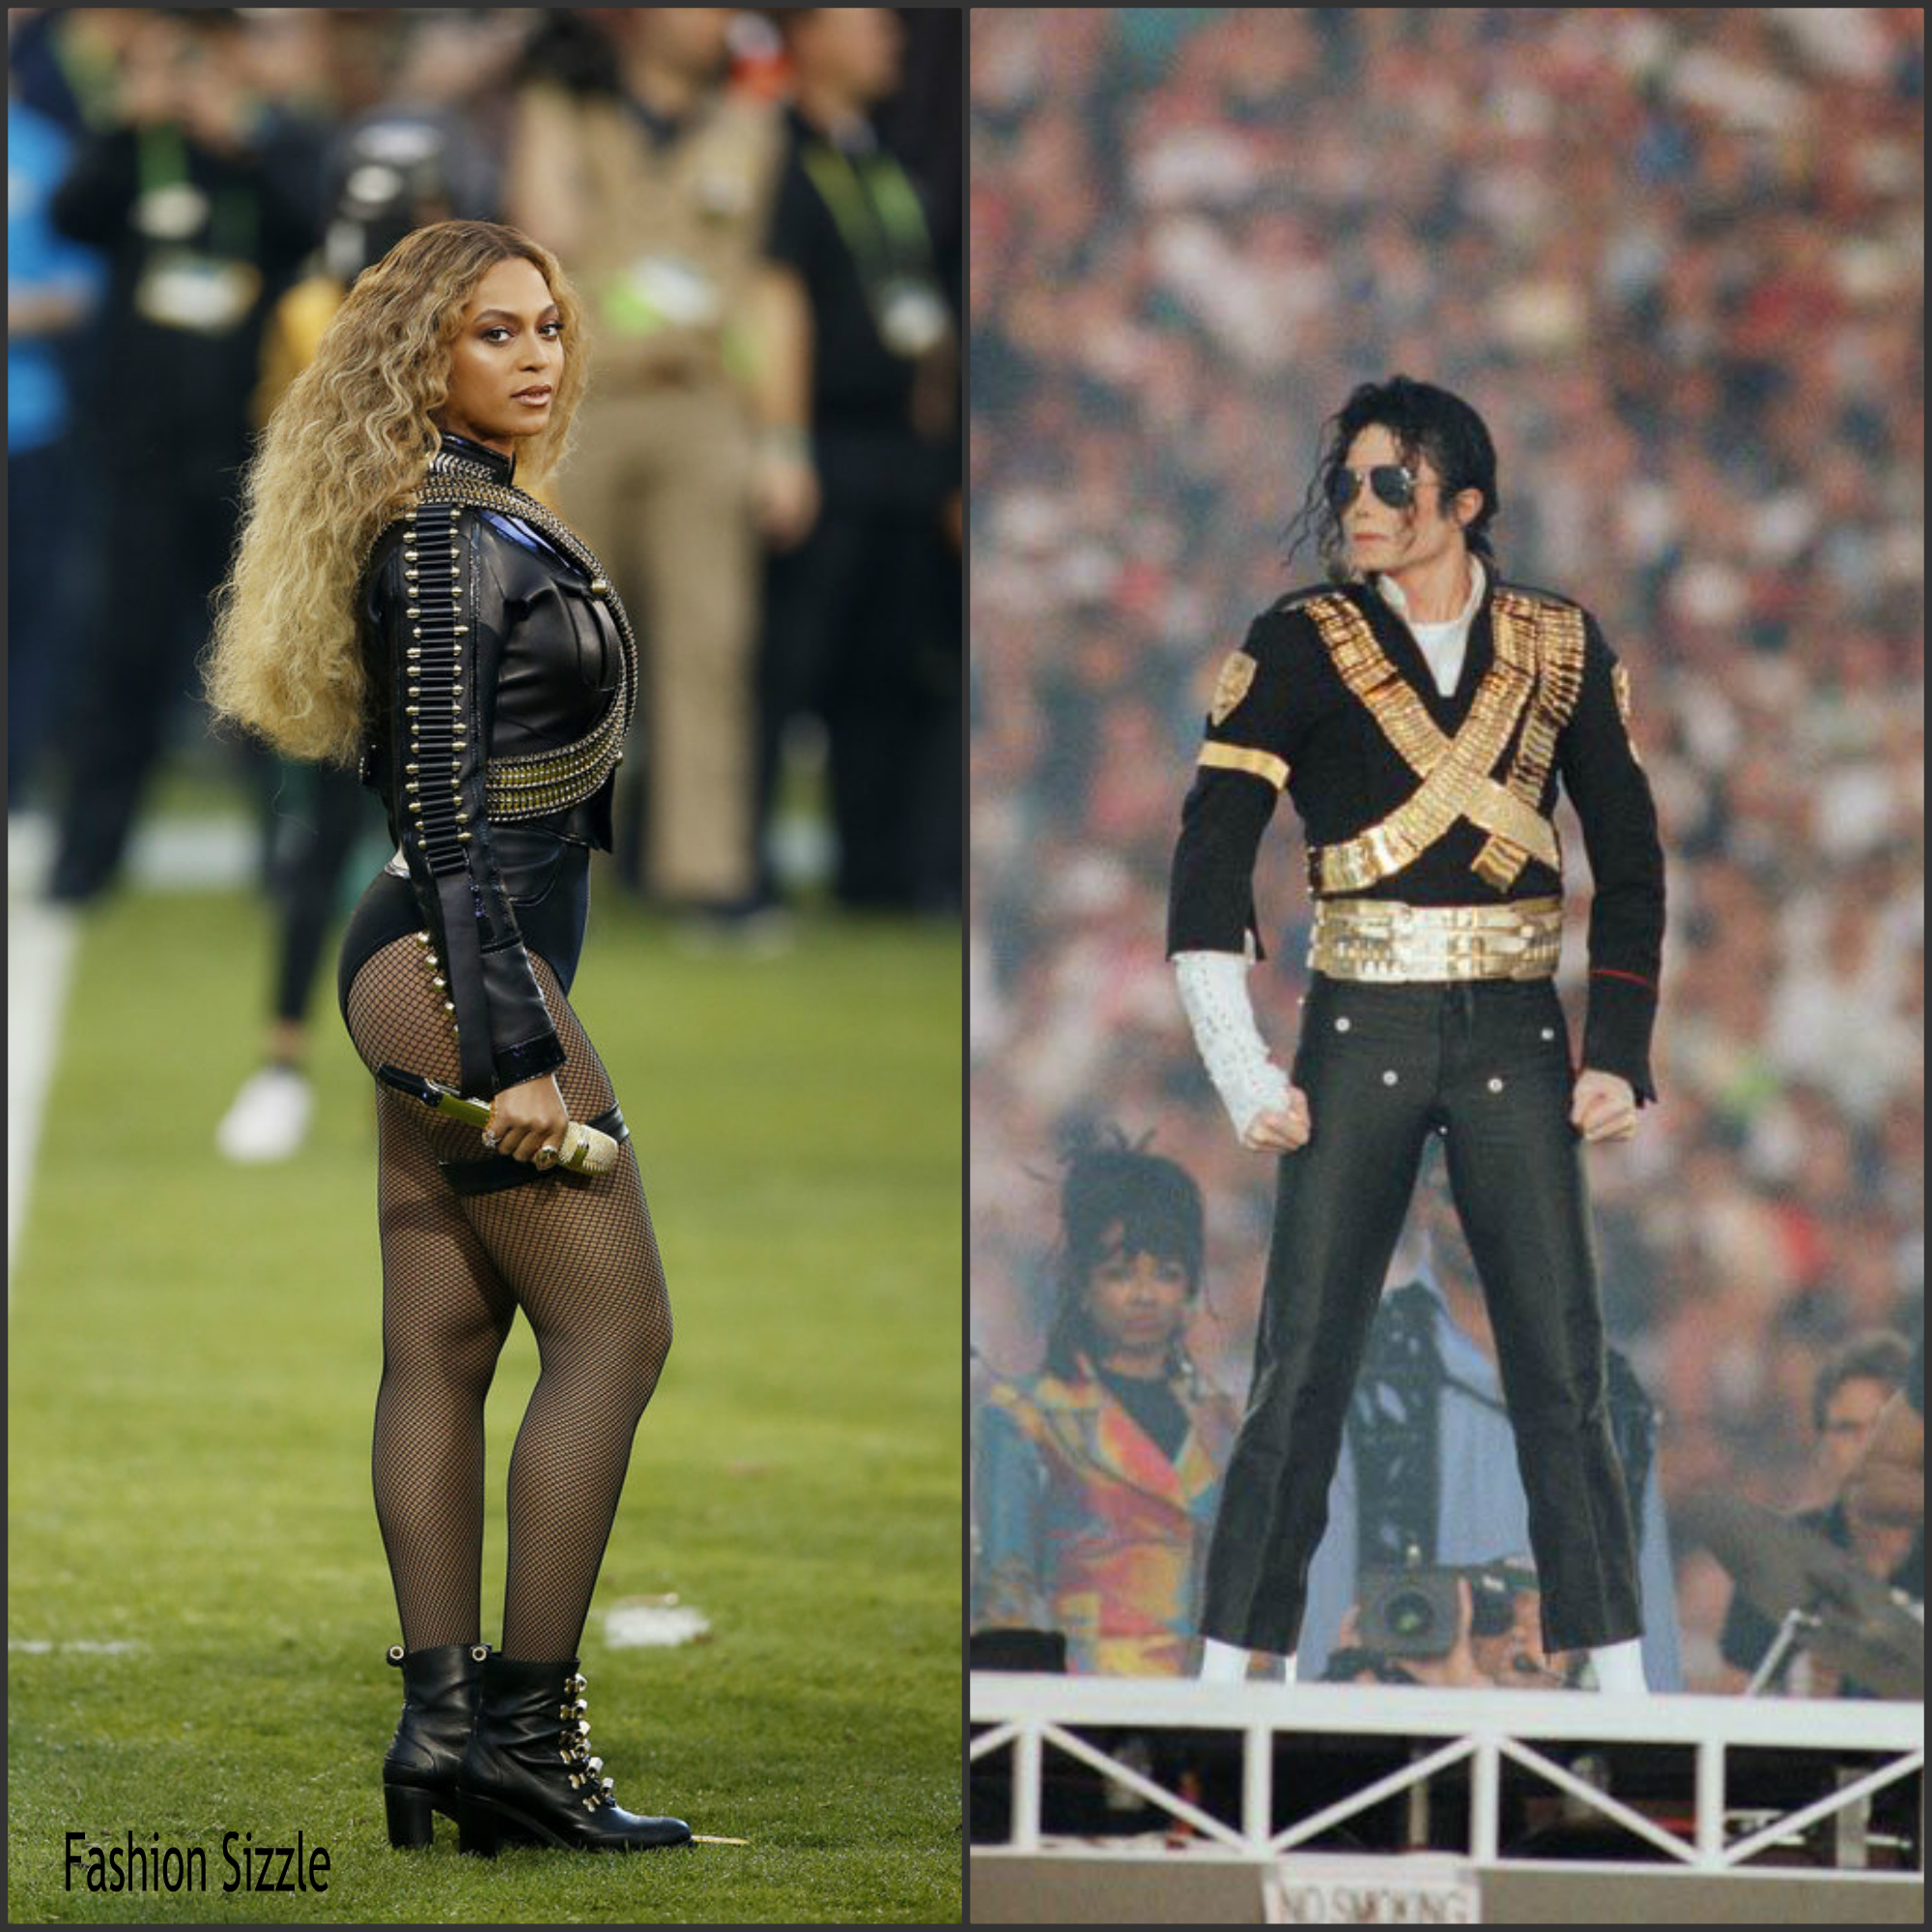 beyonce-pays-homage0to-michael-jackson-superbowl-performance